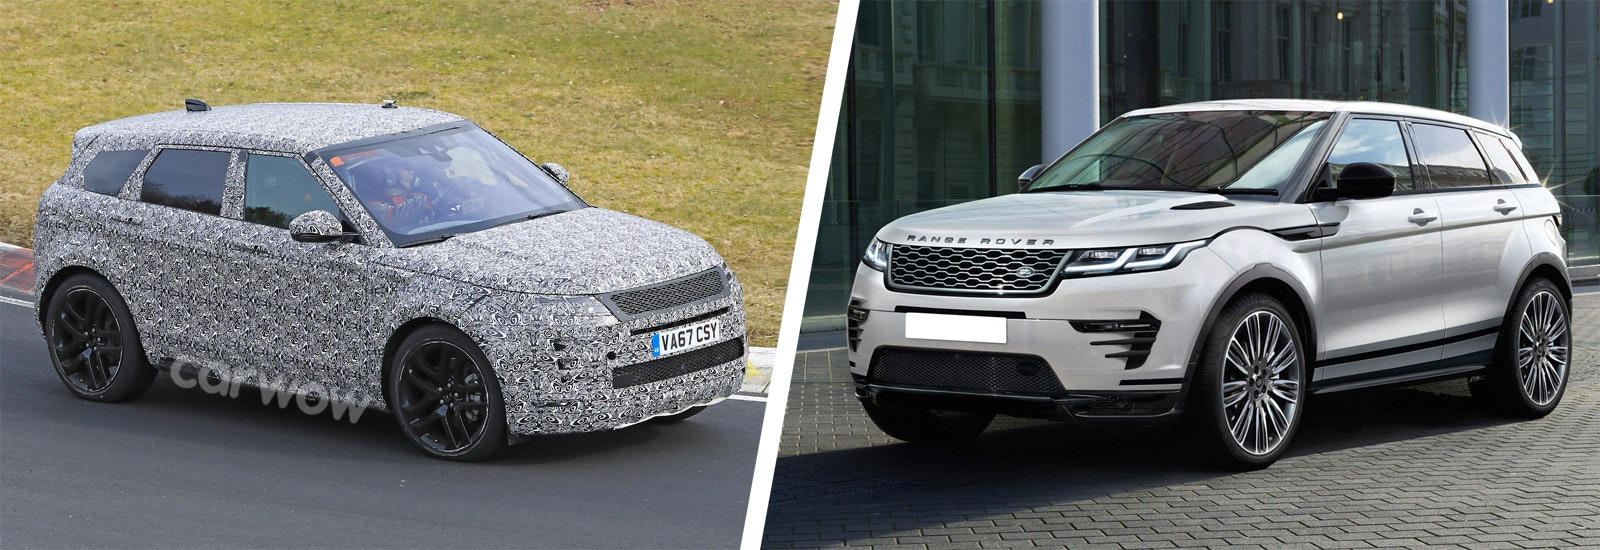 2018 Discovery Sport Interior >> 2019 Range Rover Evoque price, specs and release date | carwow